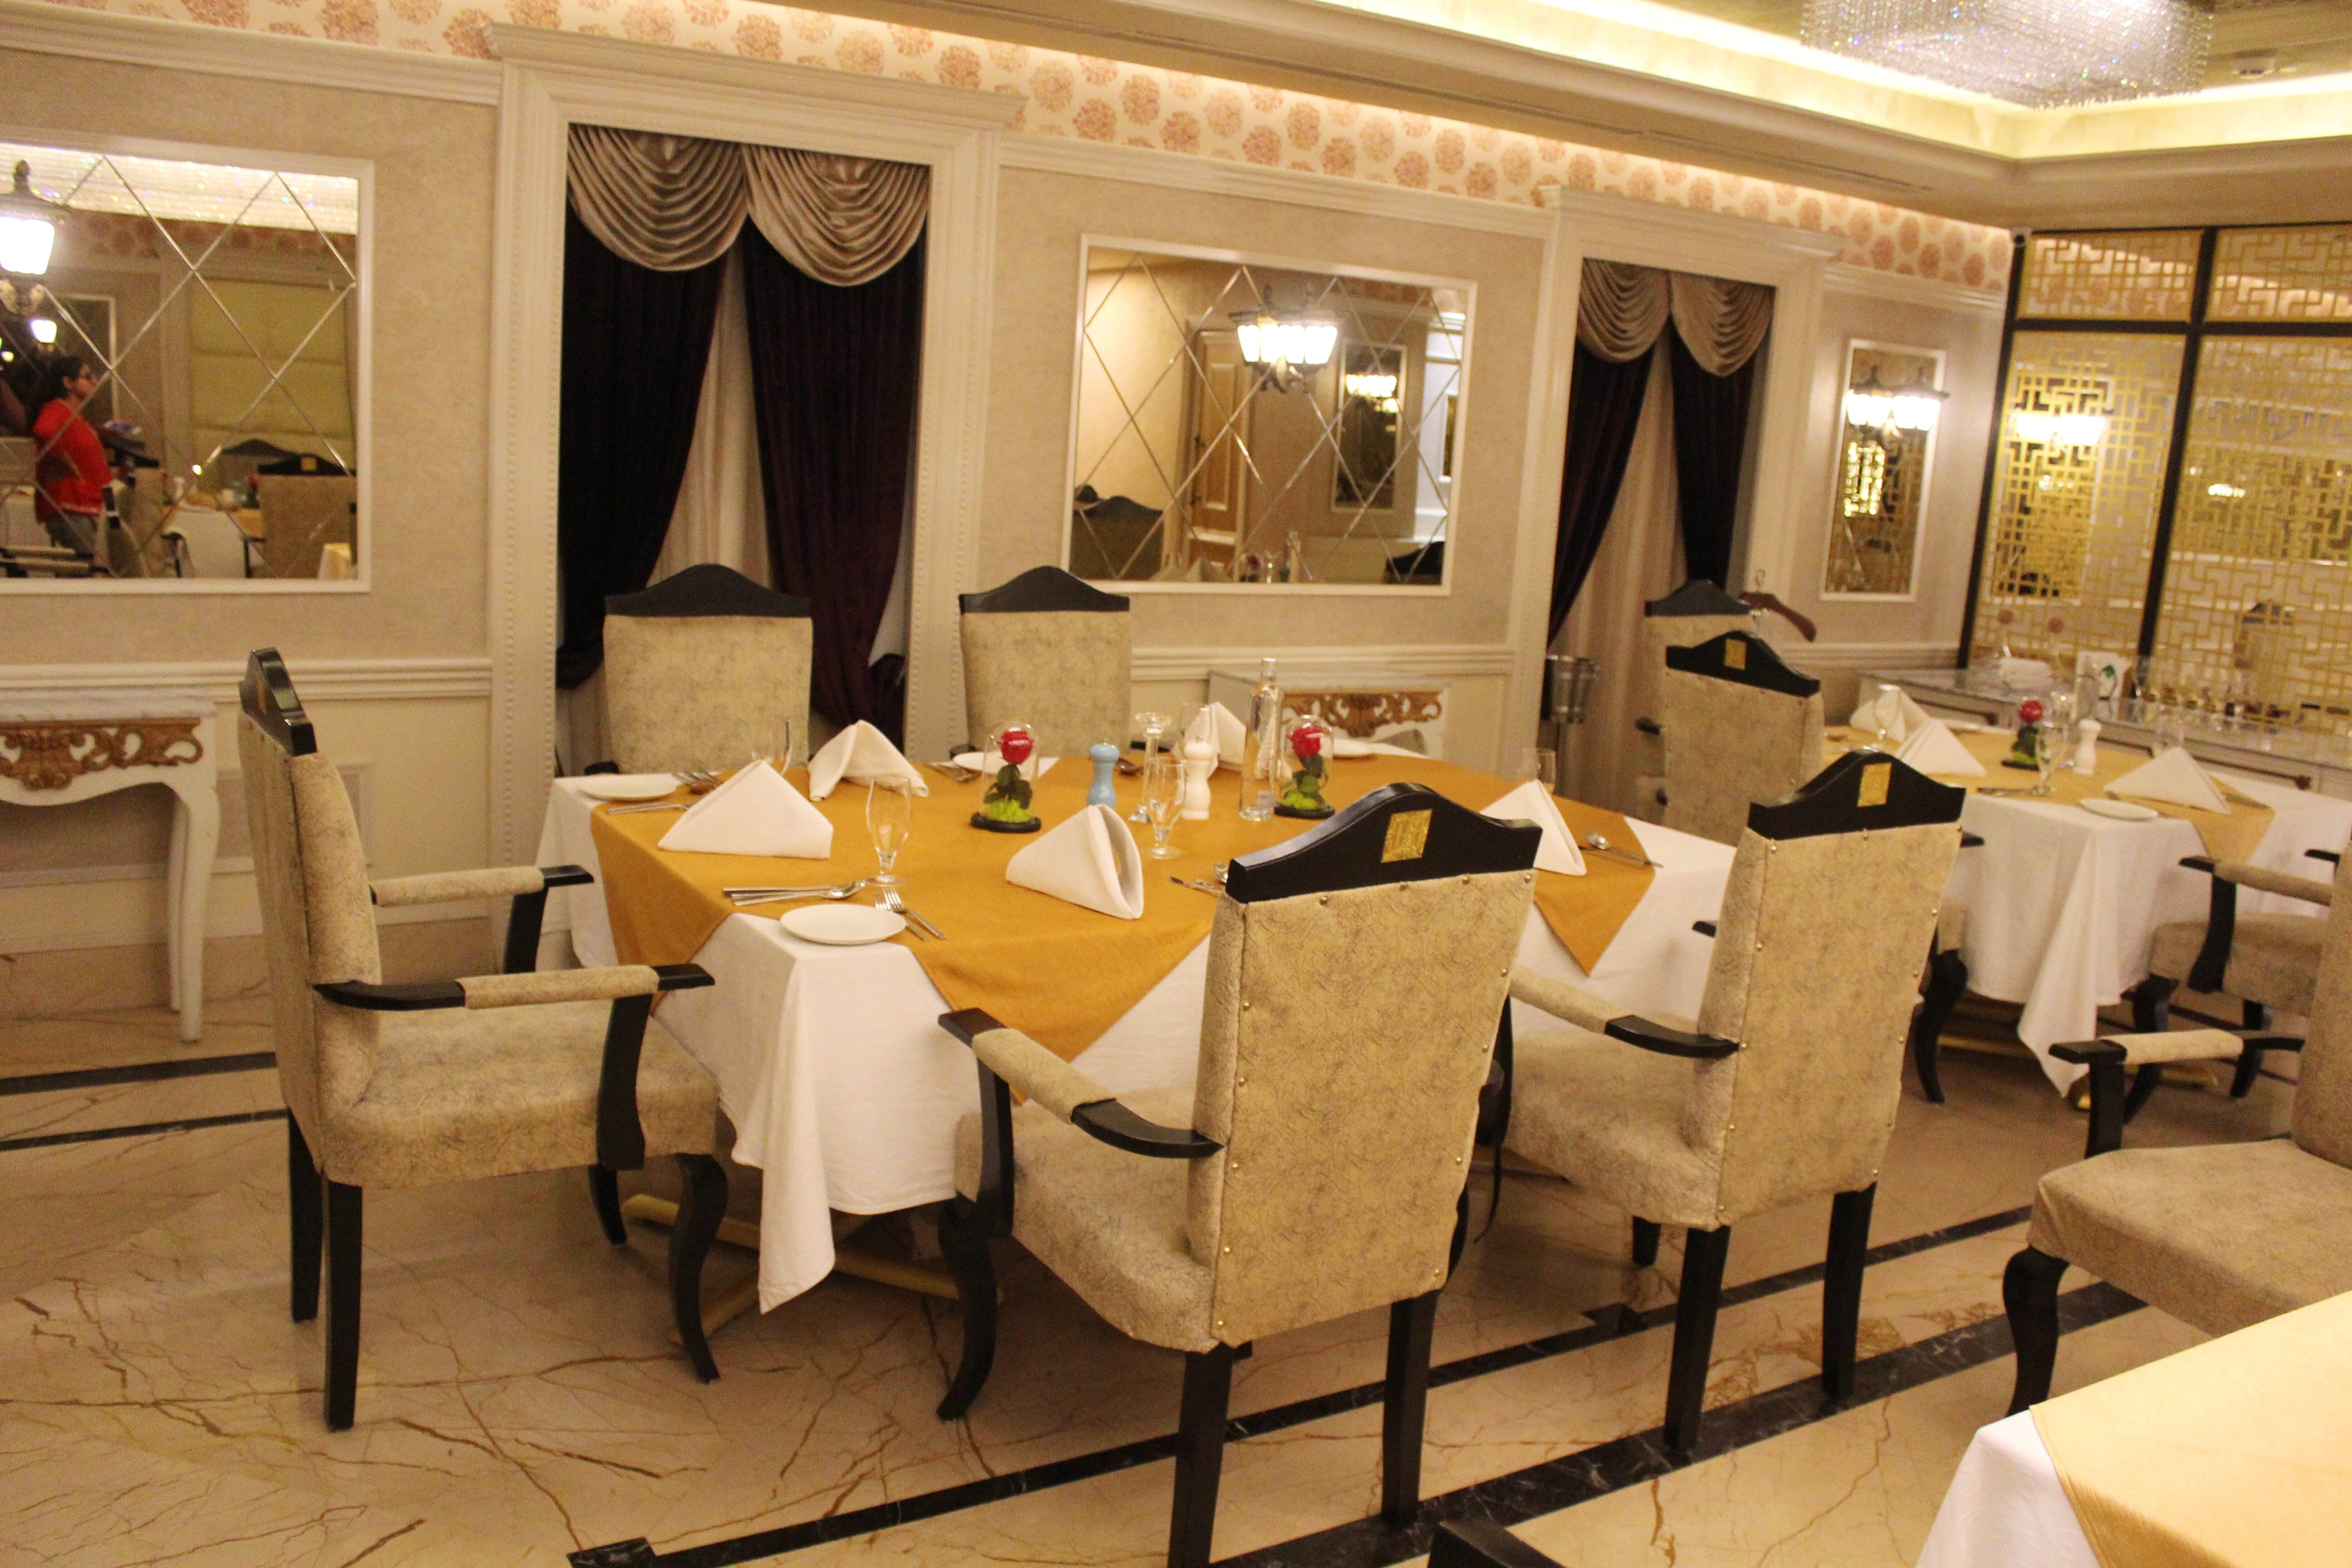 Restaurant,Property,Room,Function hall,Interior design,Building,Table,Dining room,Banquet,Furniture